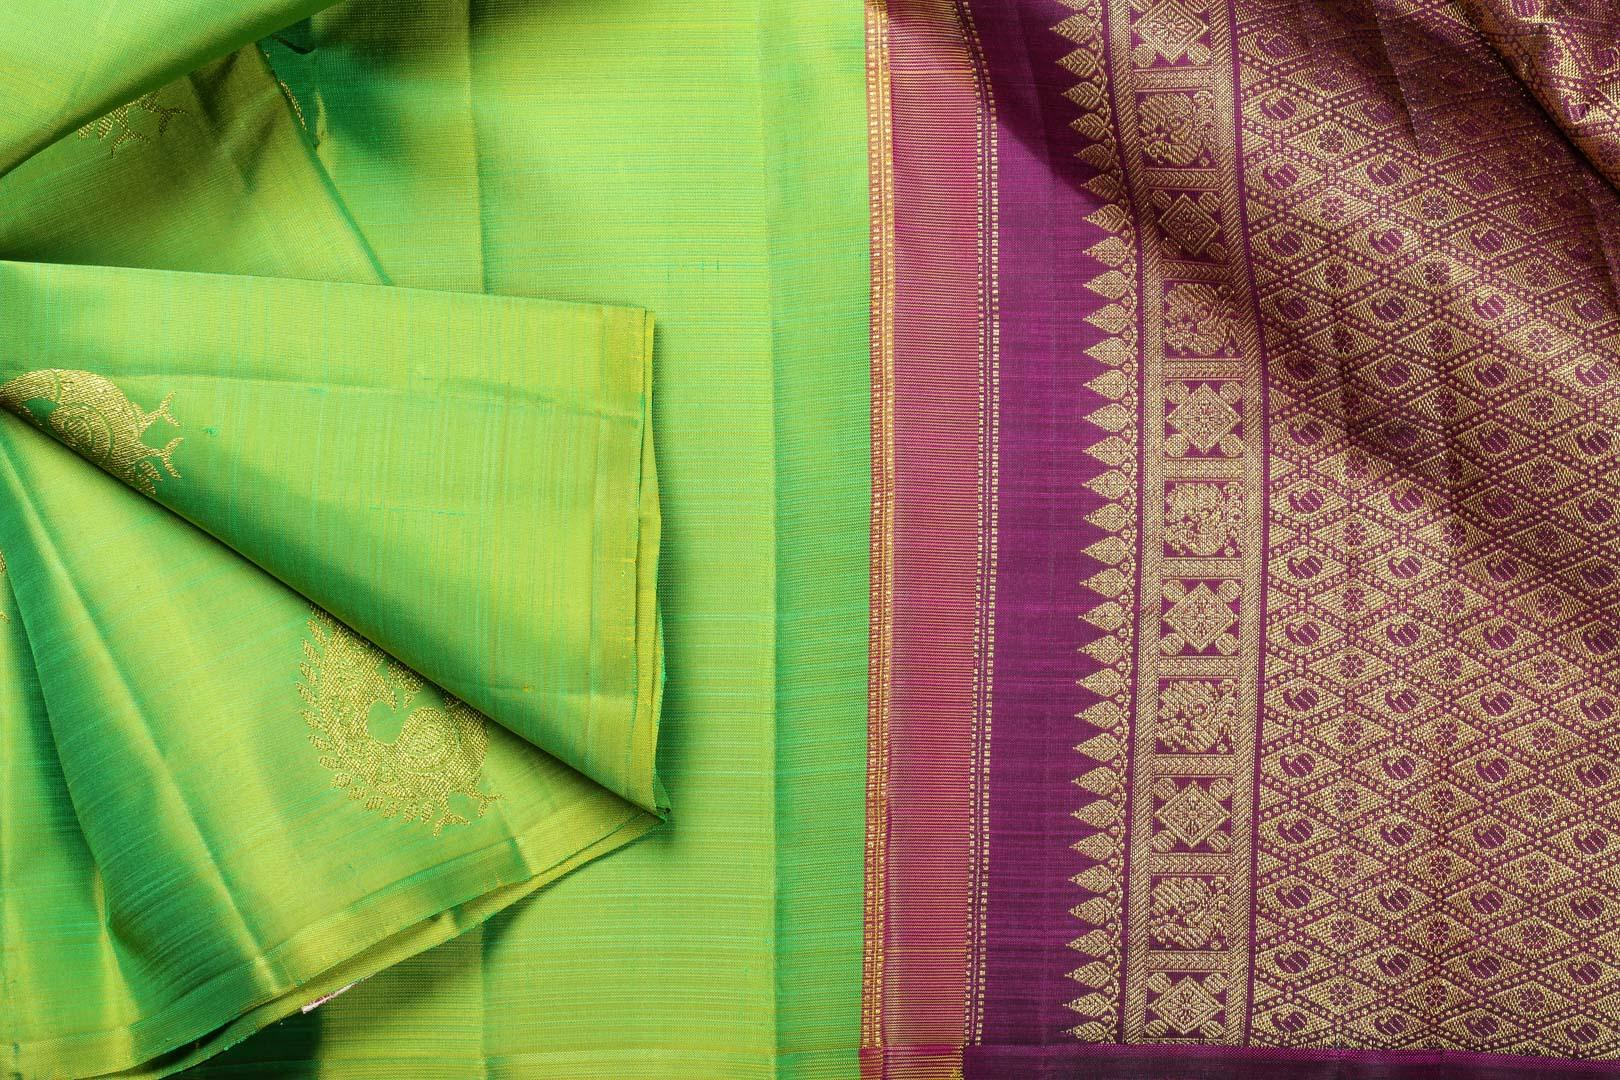 Parrot green and maroon kanjivaram silk saree